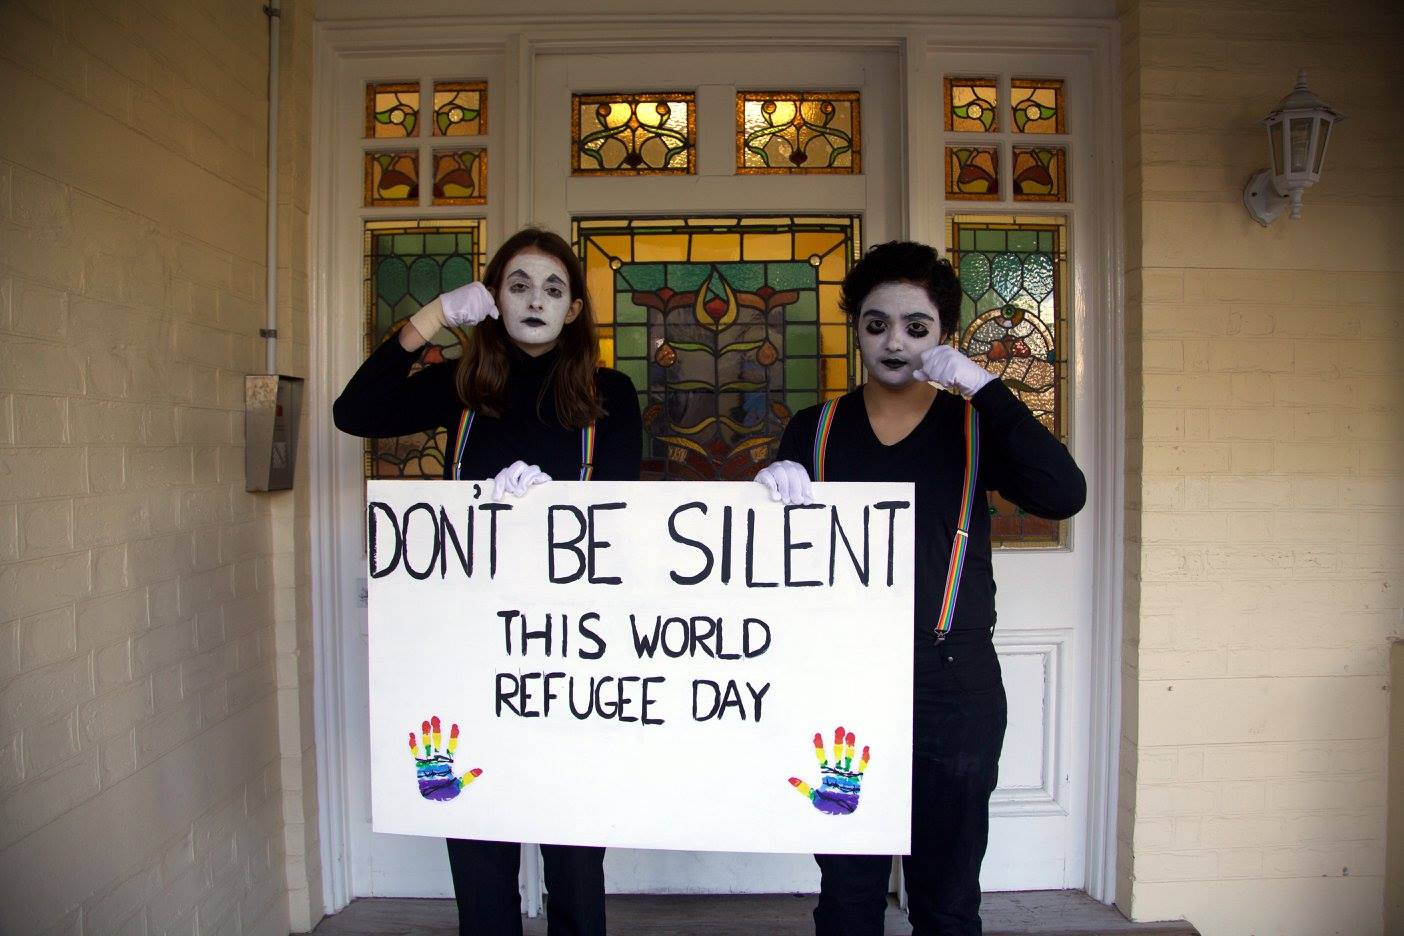 The WA Refugee and LGBTQI action groups joined forces and dressed as mimes paying visits to MP offices in Perth calling on their representatives to speak out for the protection of gender, sex and sexuality diverse refugees. Amnesty activists Isabella Houston and Patch Miller are featured in the picture.